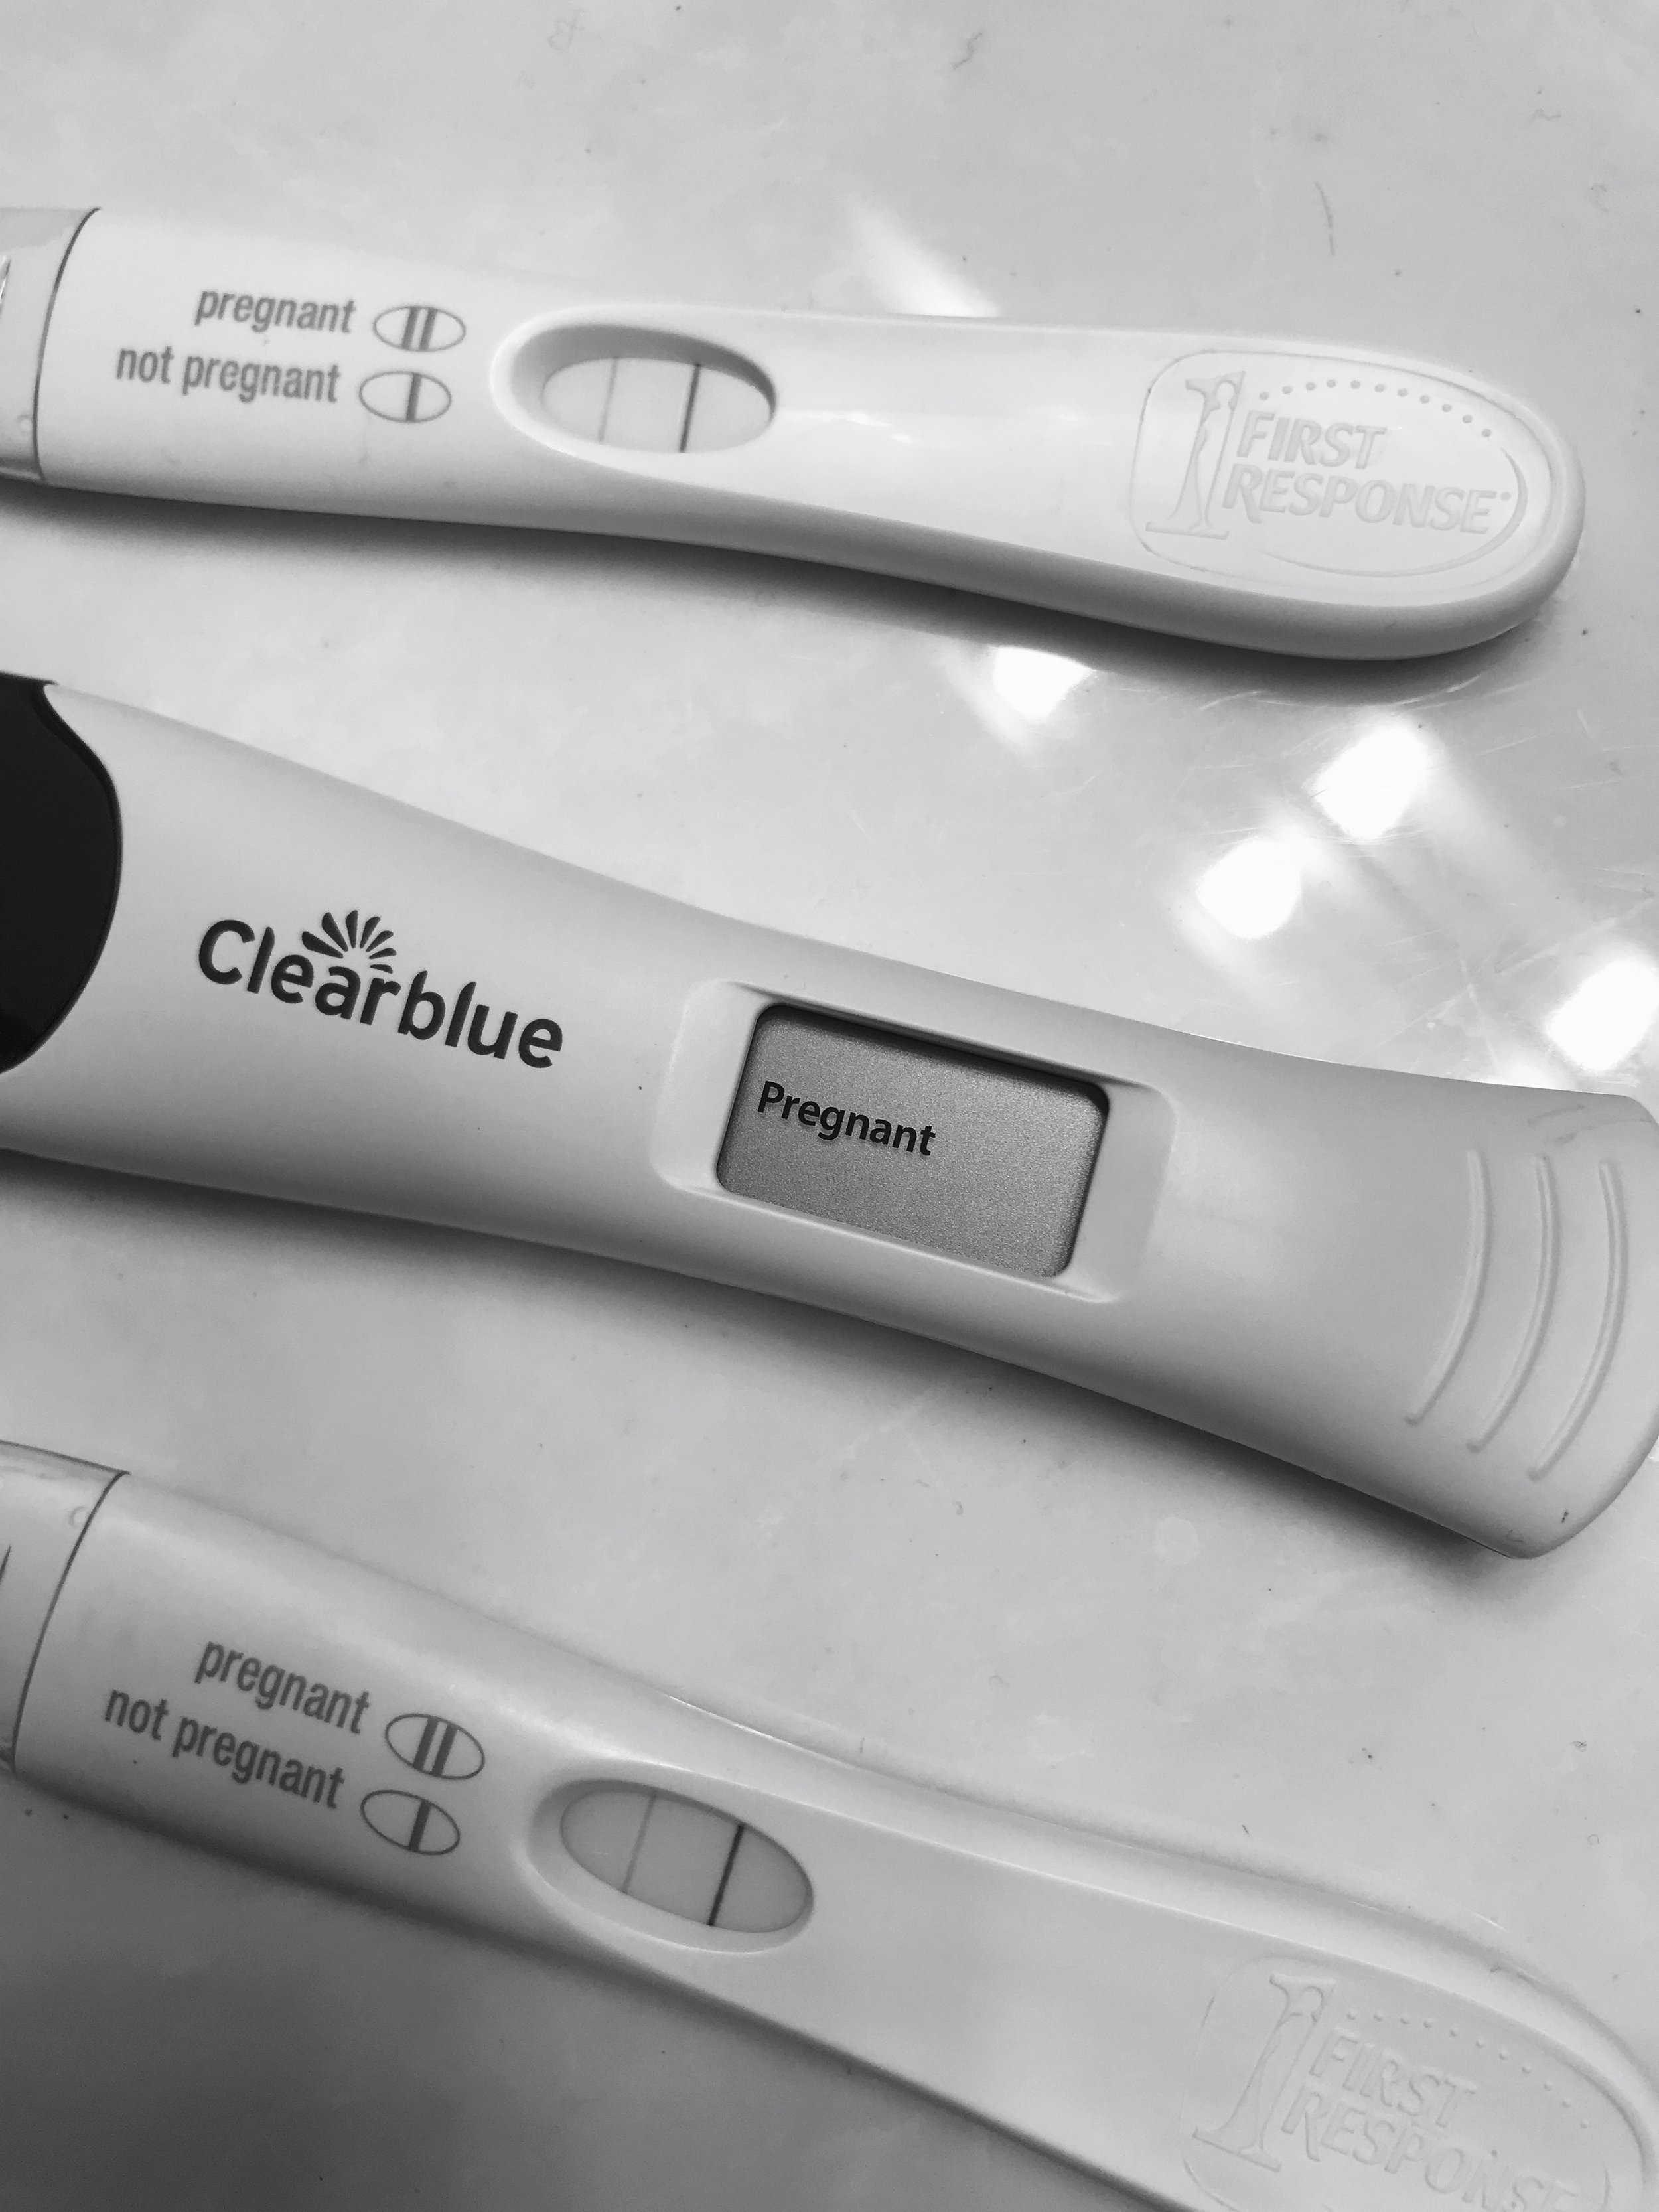 3 positive pregnancy test! We were SO excited!